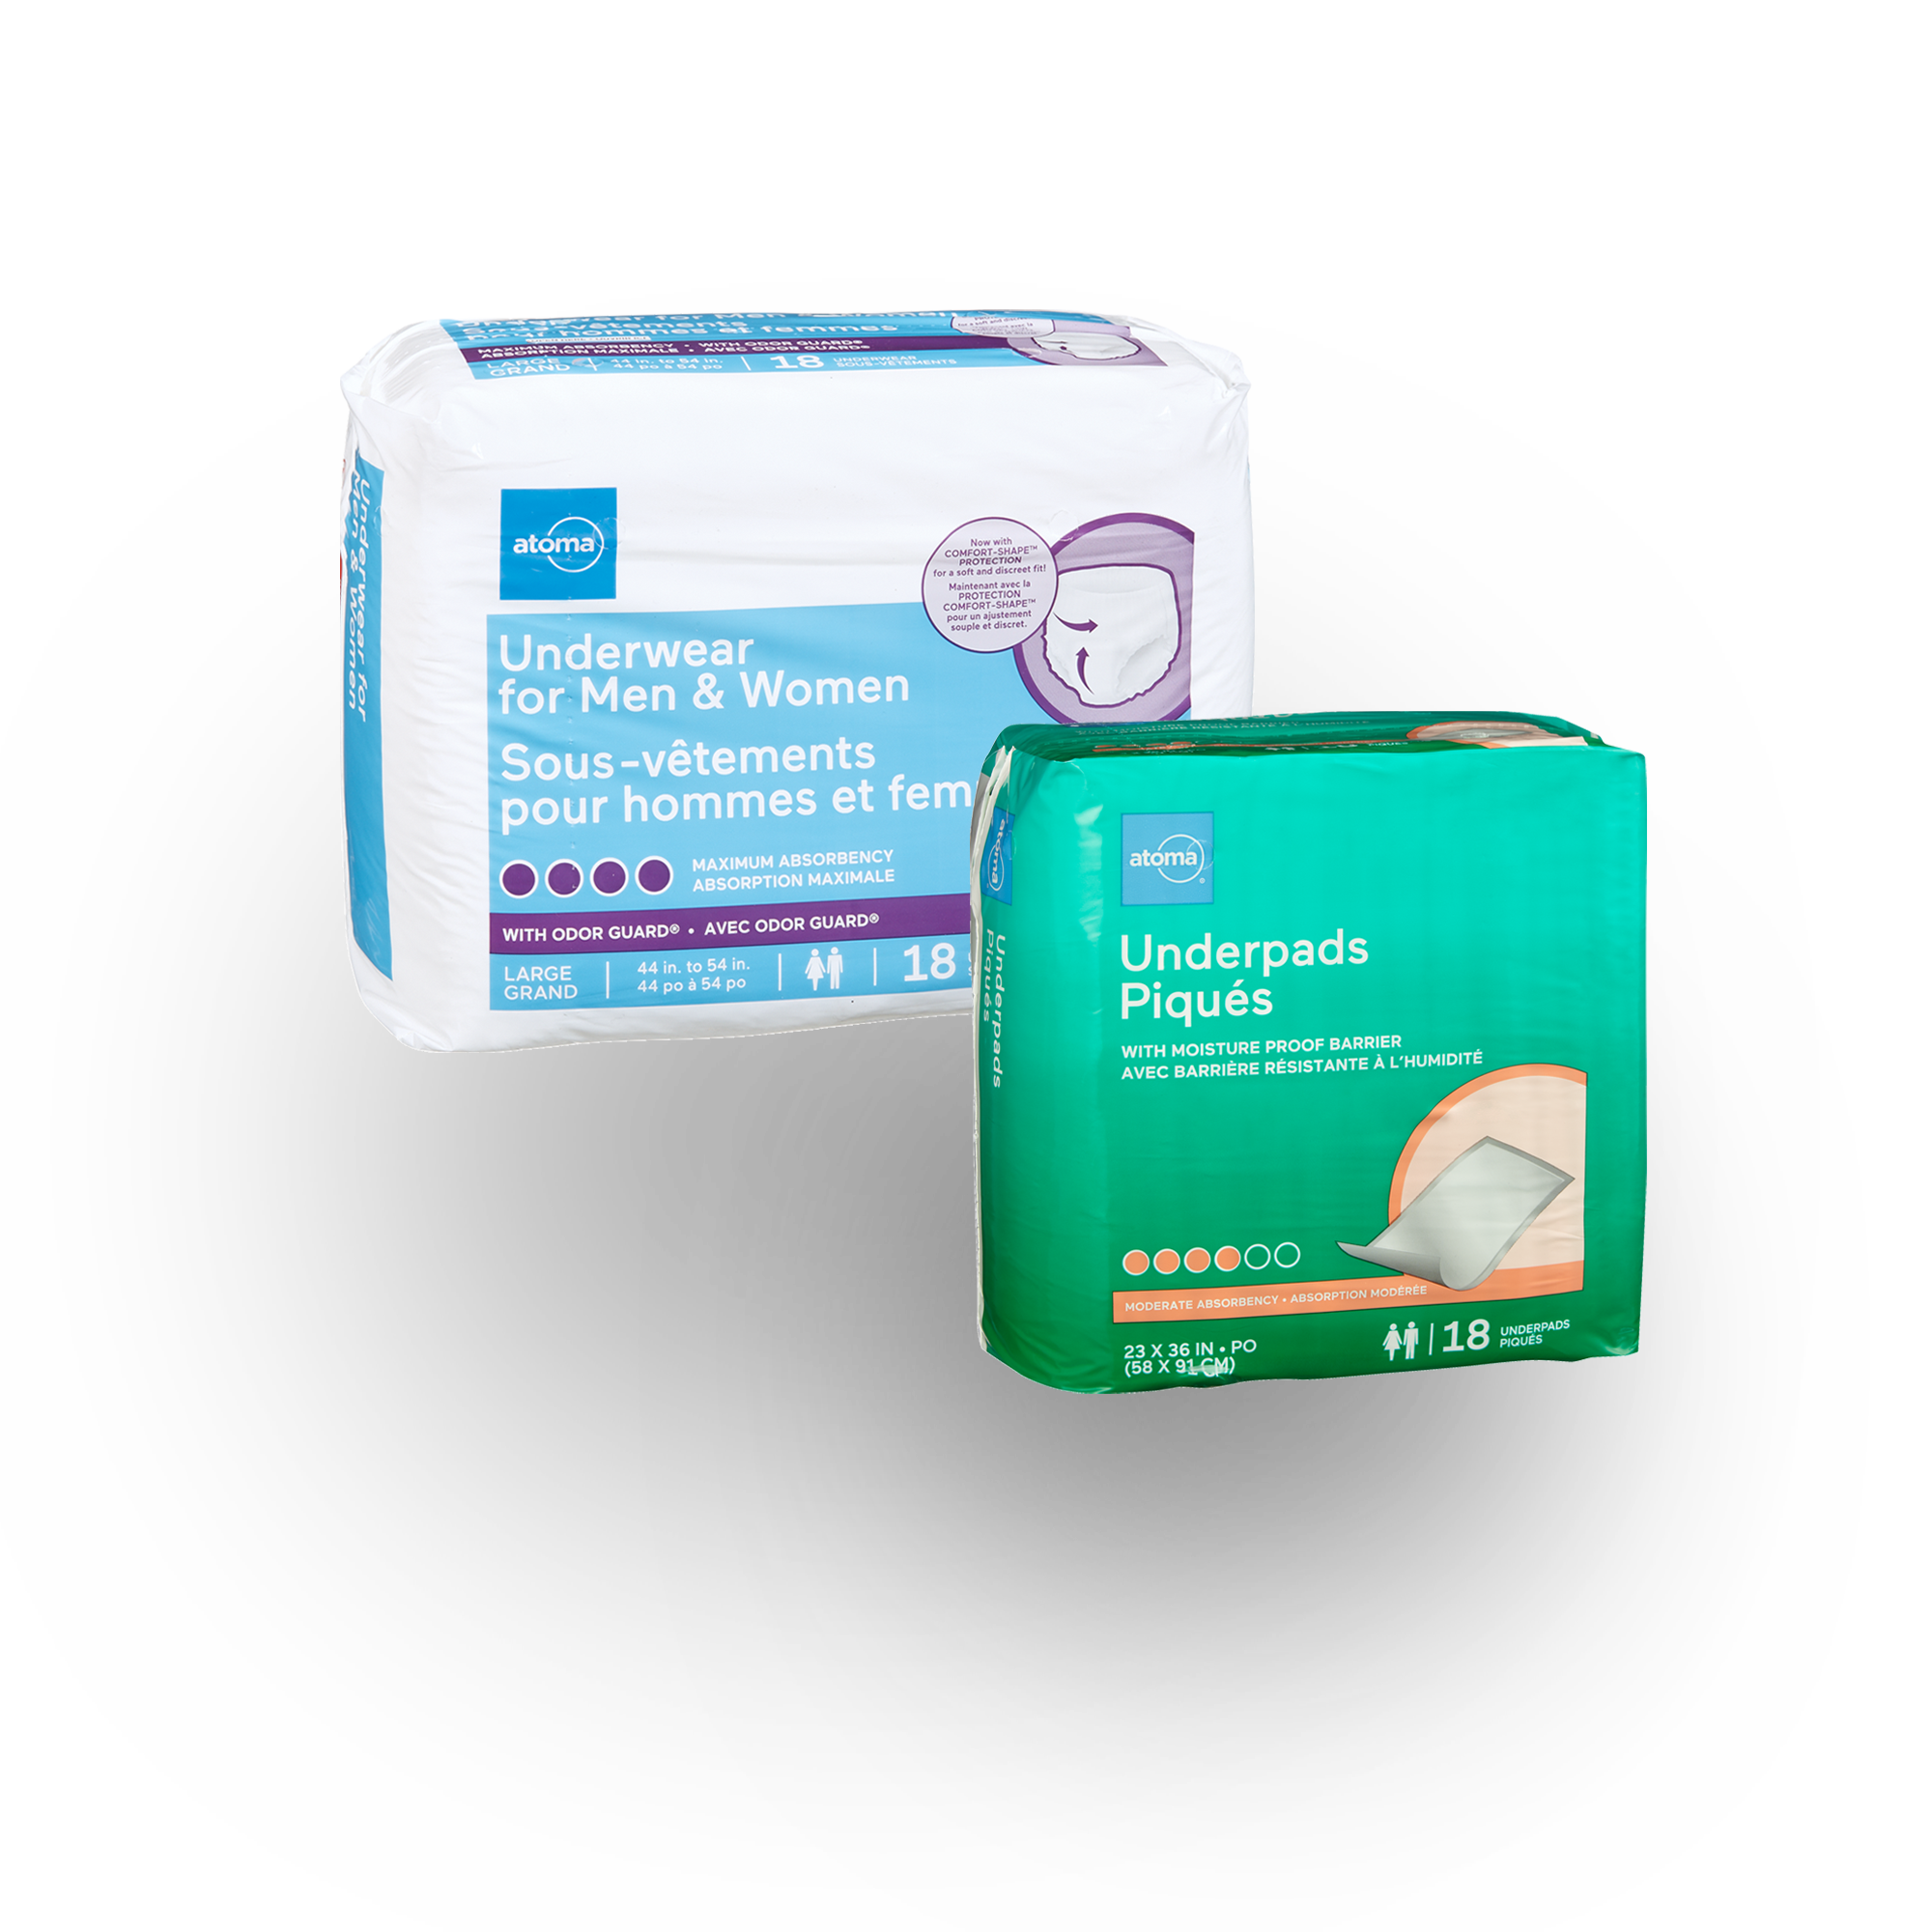 atoma incontinence products for those with reduced mobility